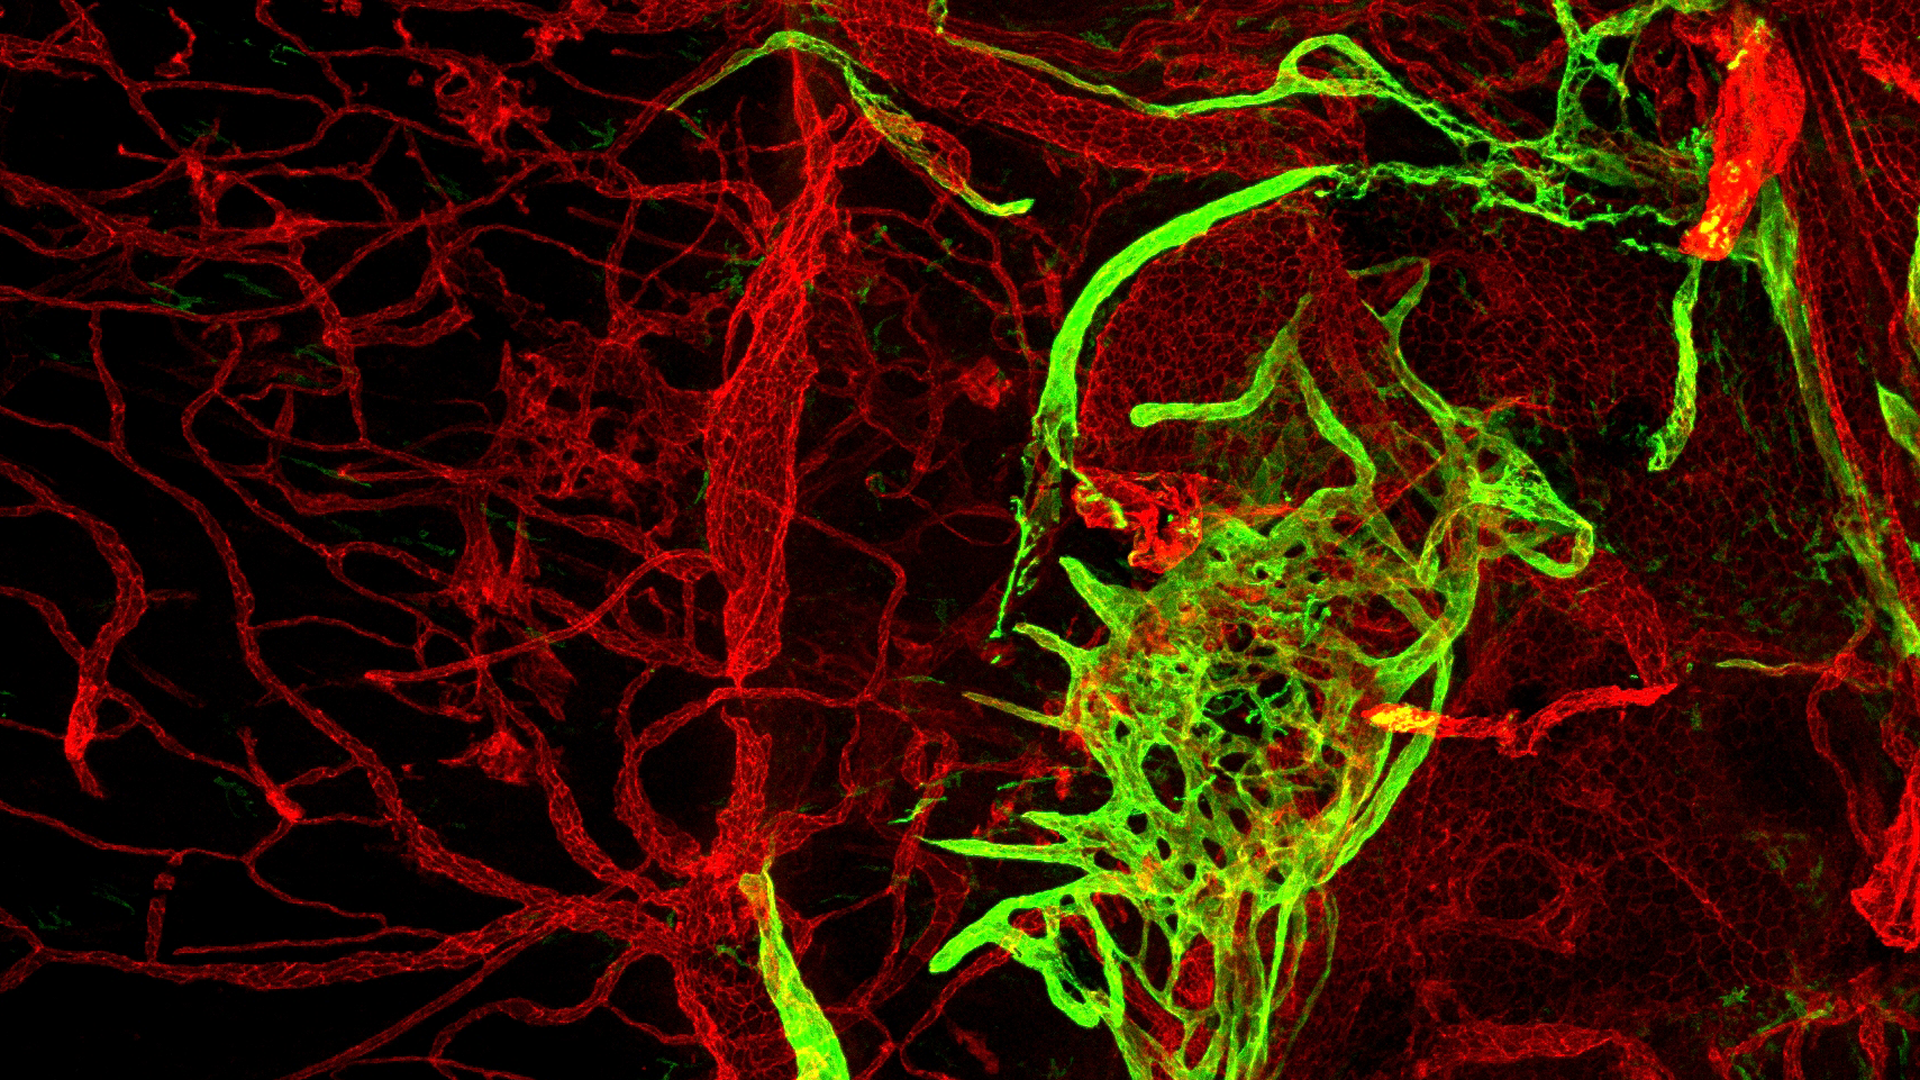 Aging vessels that drain waste from the brain could be associated with neurological issues